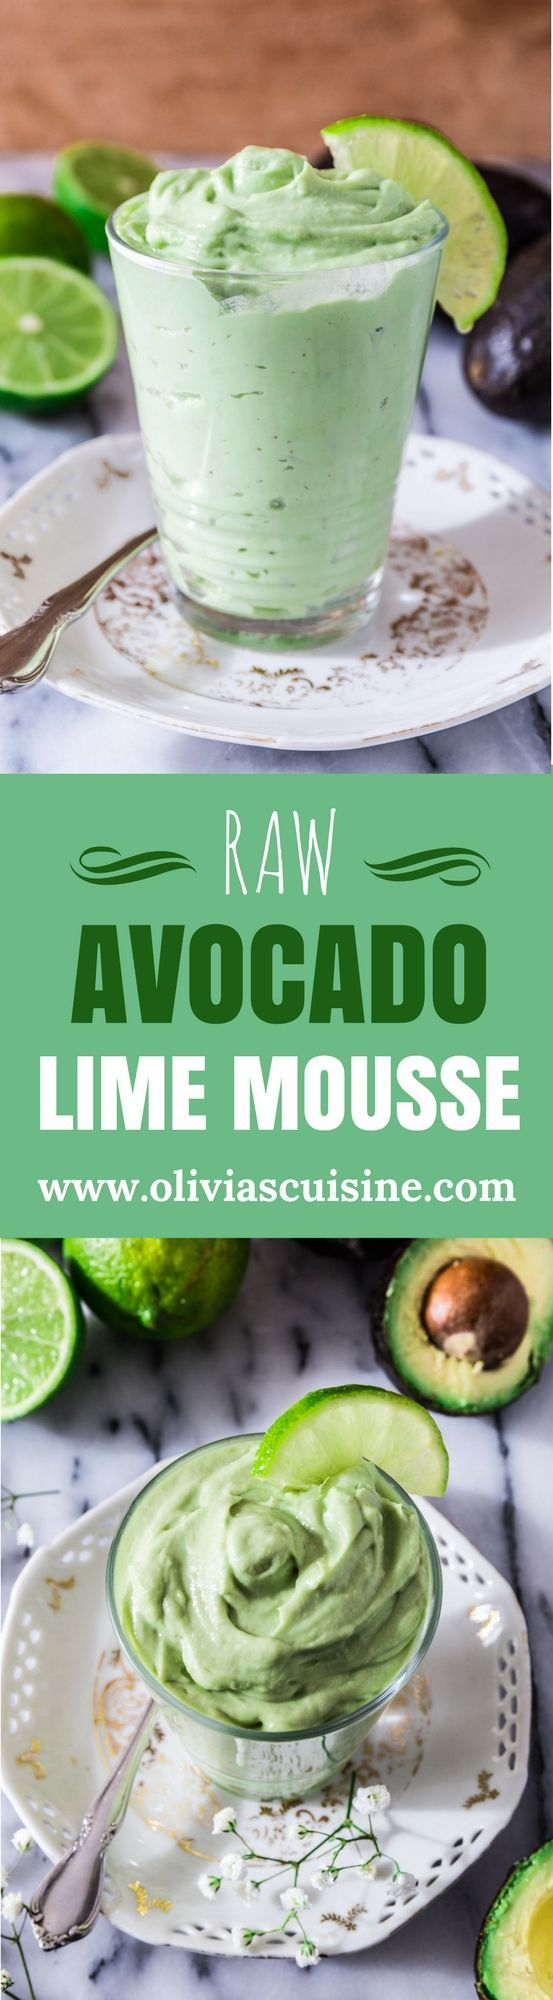 Raw Avocado Lime Mousse   www.oliviascuisine.com   Looking for a guilt free dessert? This Raw Avocado Lime Mousse will do the trick. Not only delicious but also heart check certified! ❤️️ Oh, and made with only 3 ingredients. What could be better than that? (Recipe by @oliviascuisine in partnership with @hassavocados.) #addavocado #LoveOneToday